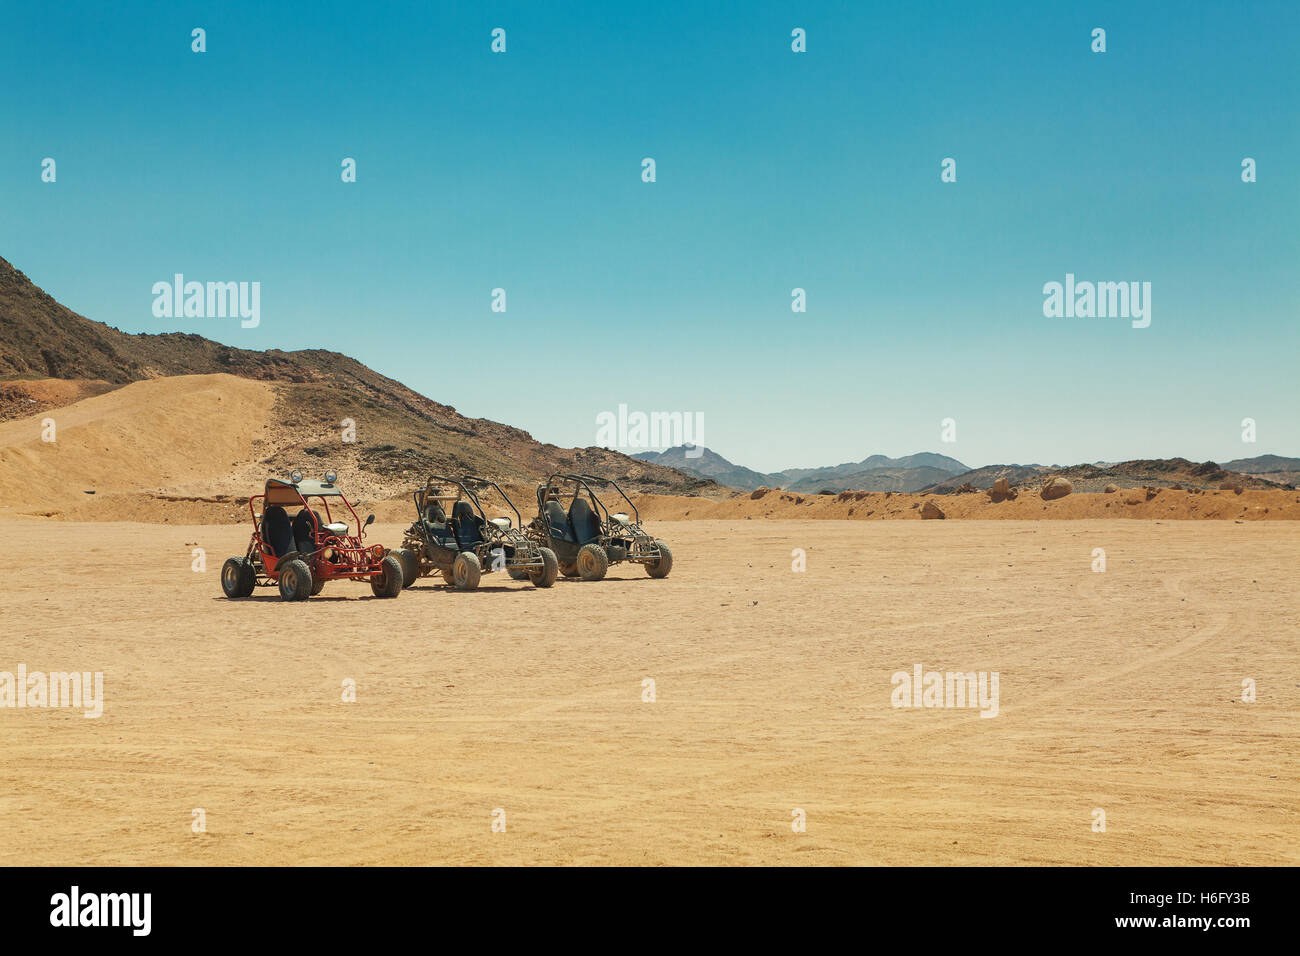 three atv standing in hot desert under clear sky - Stock Image